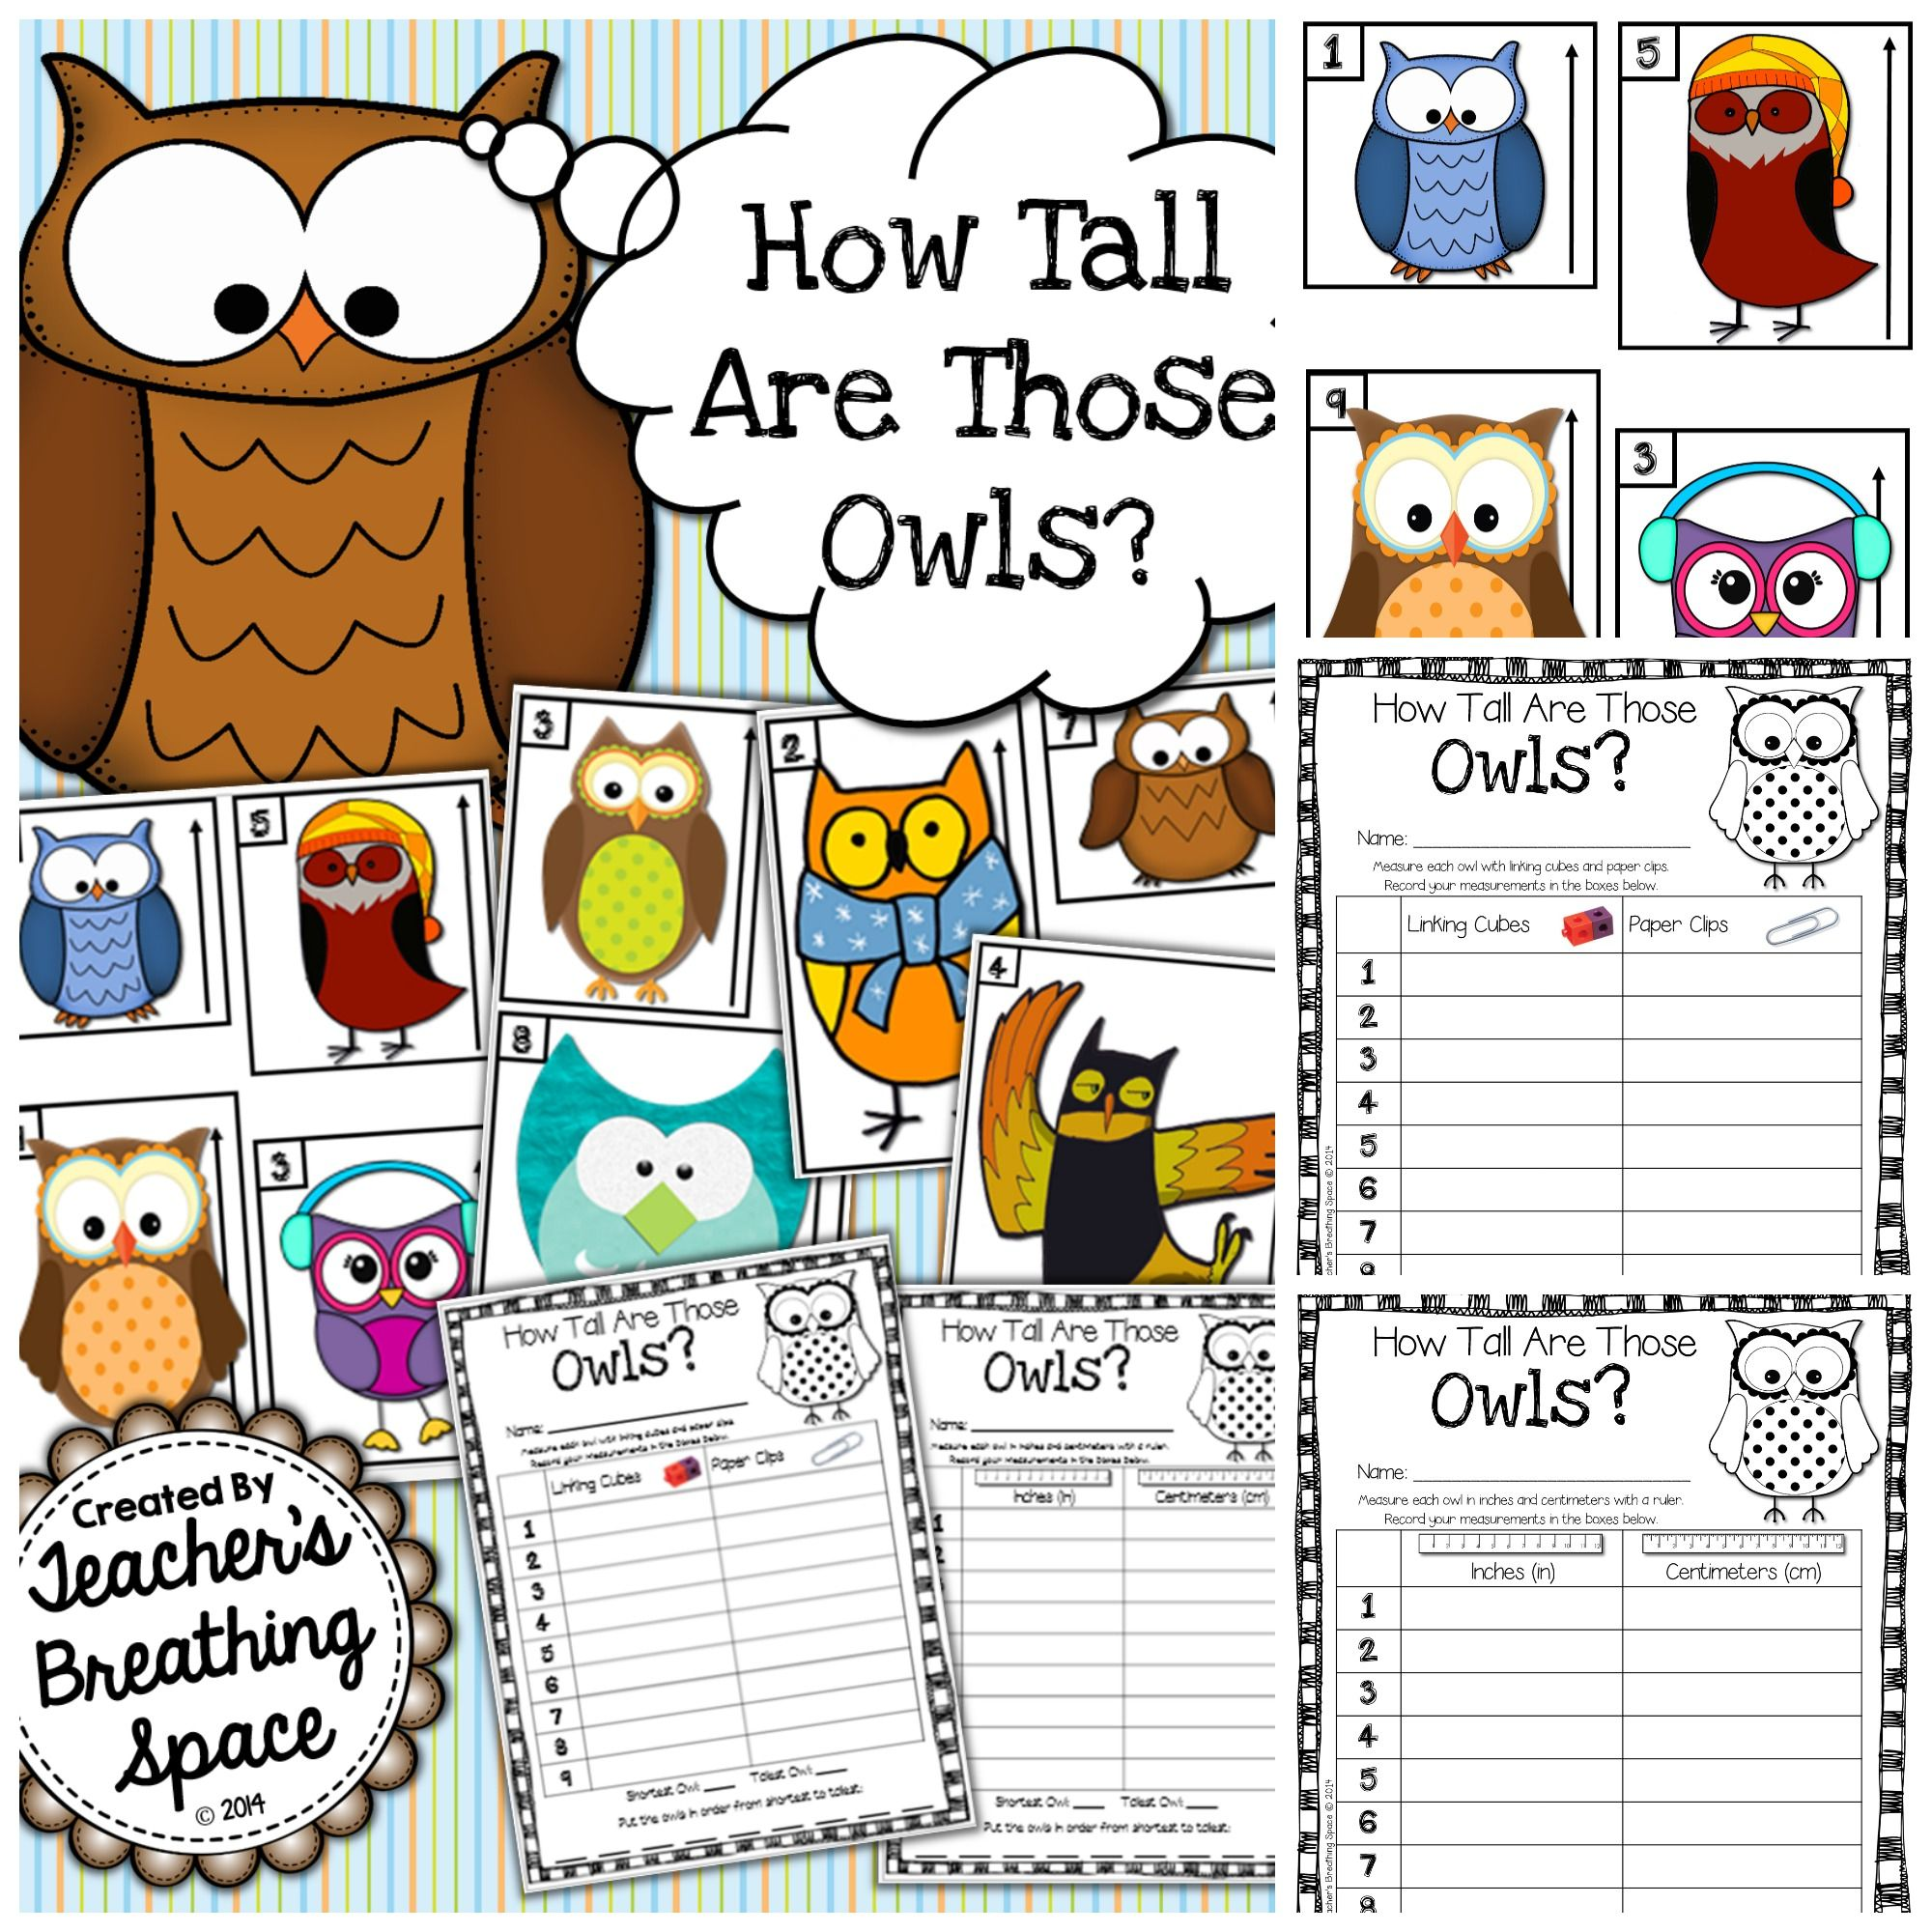 Owl Measuring Math Game How Tall Are Those Owls Fall Math Center